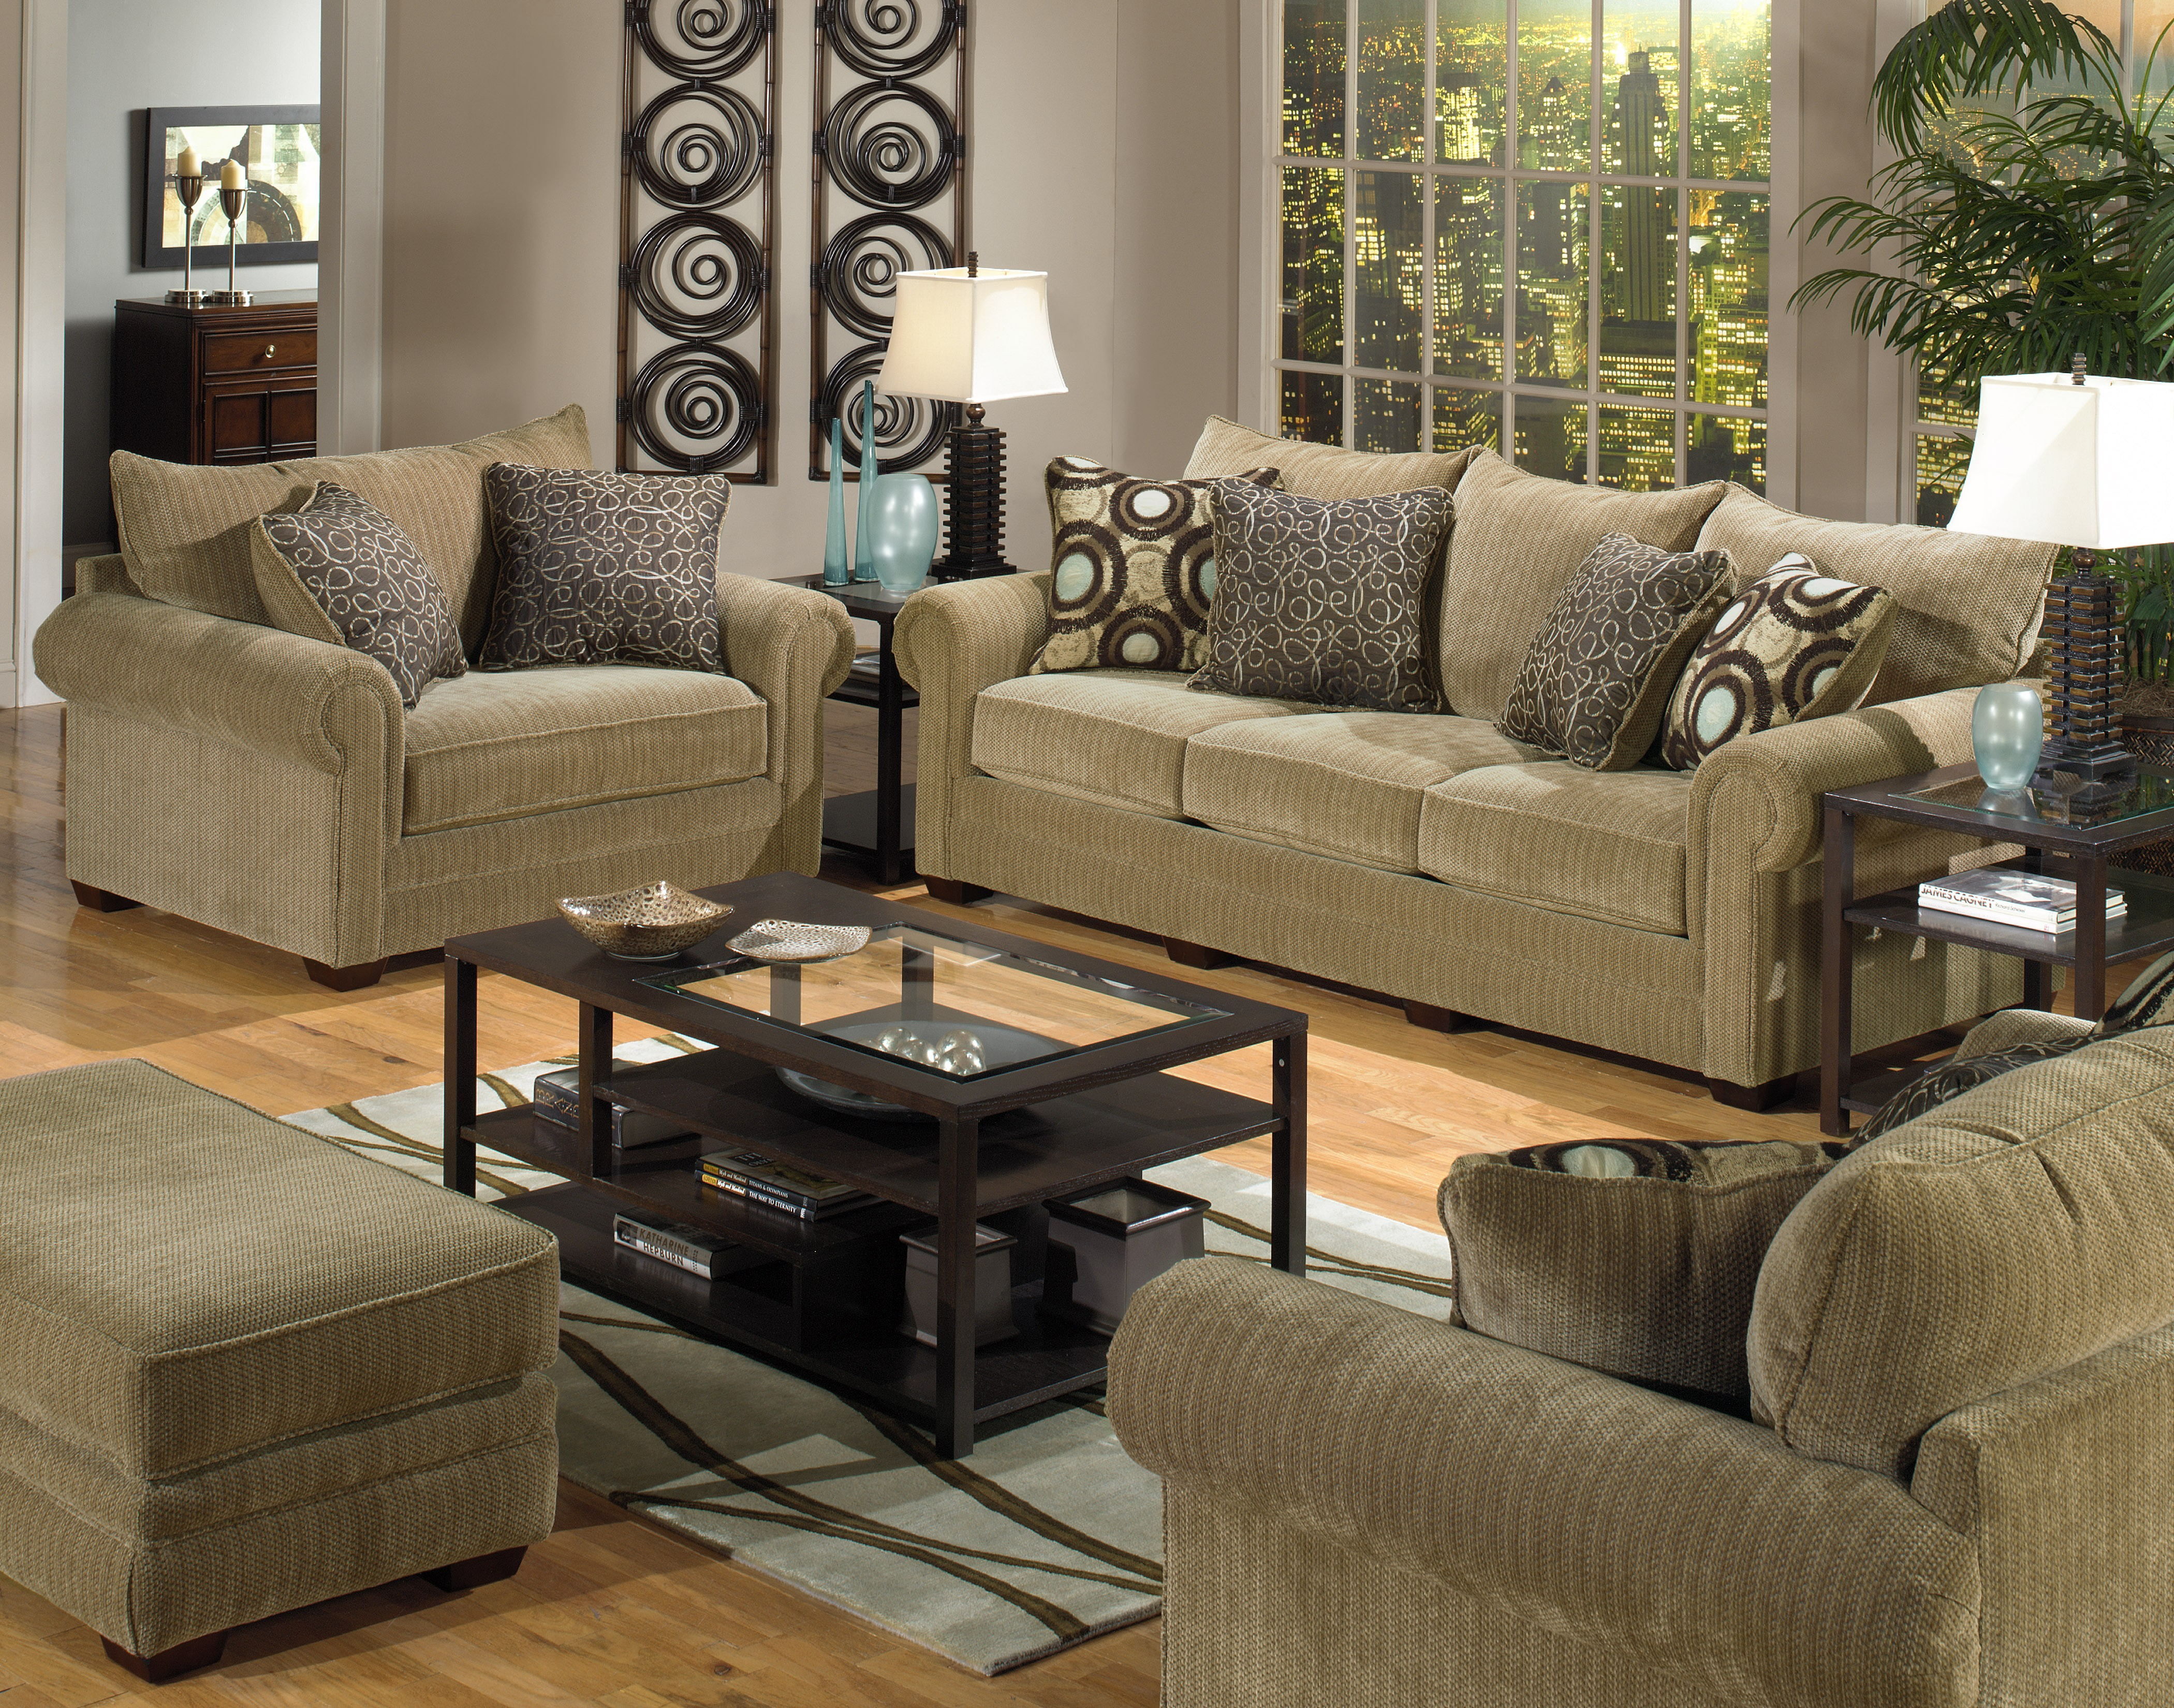 Couches Pillows Table Rug Floor